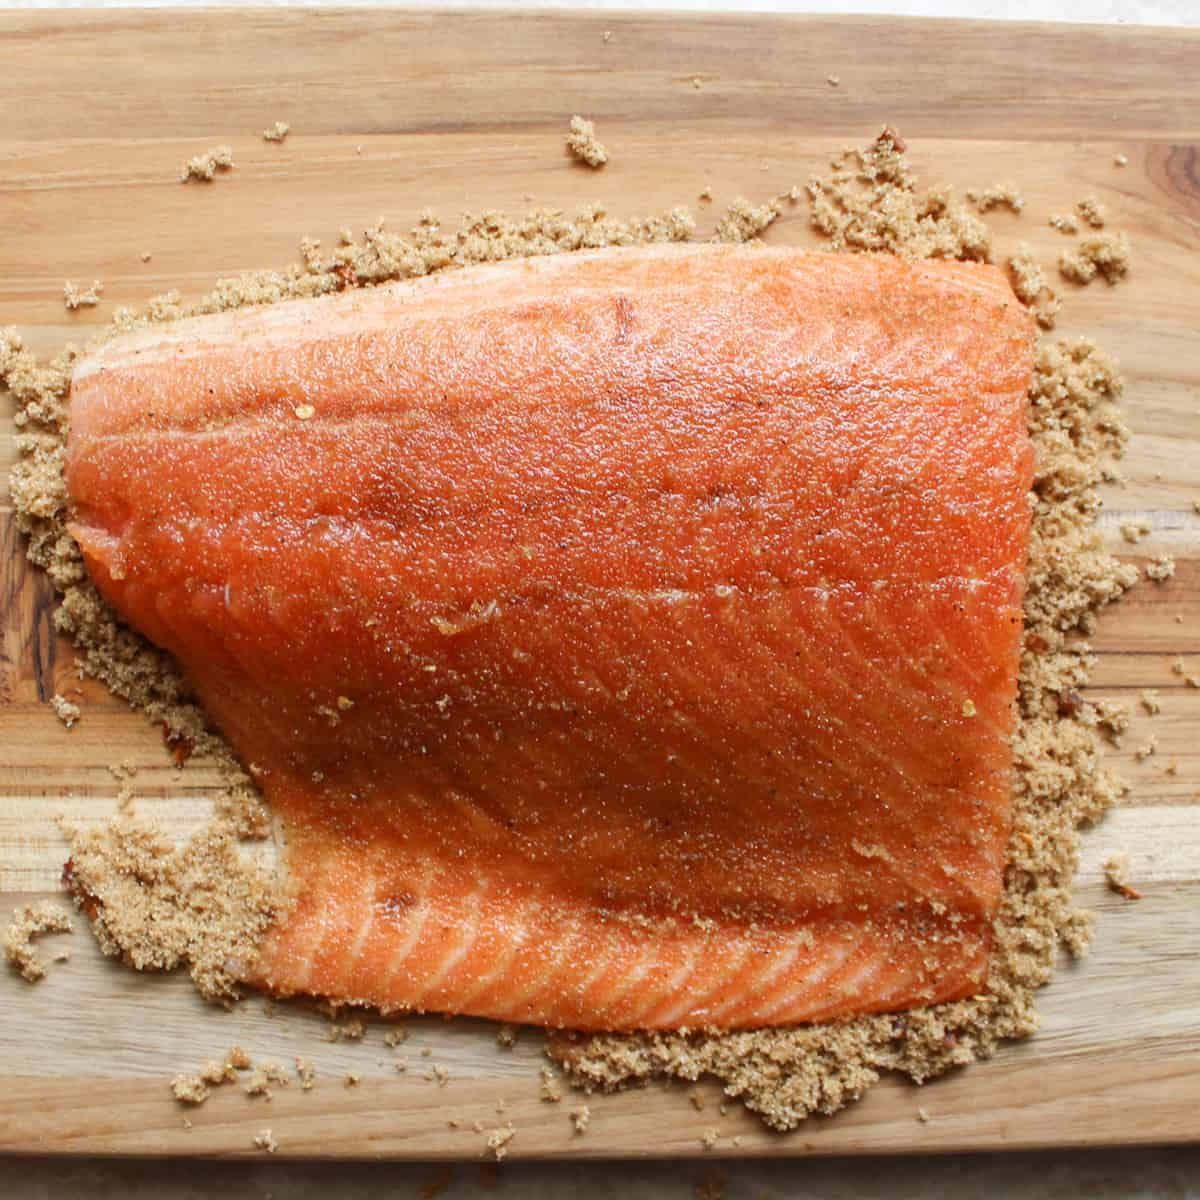 salmon rubbed with spice rub